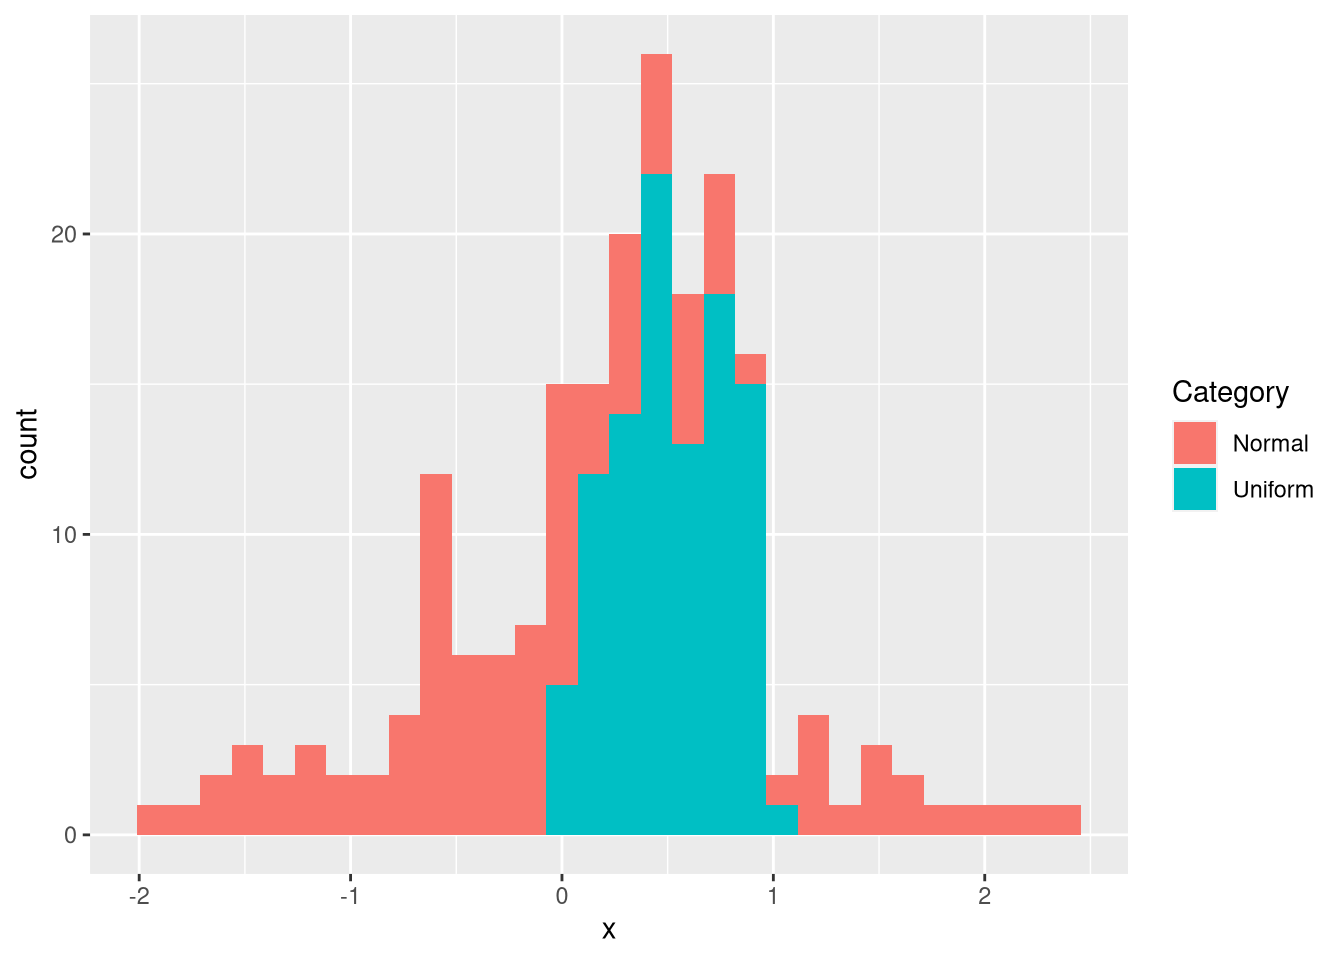 Determining the Distribution of Data Using Histograms